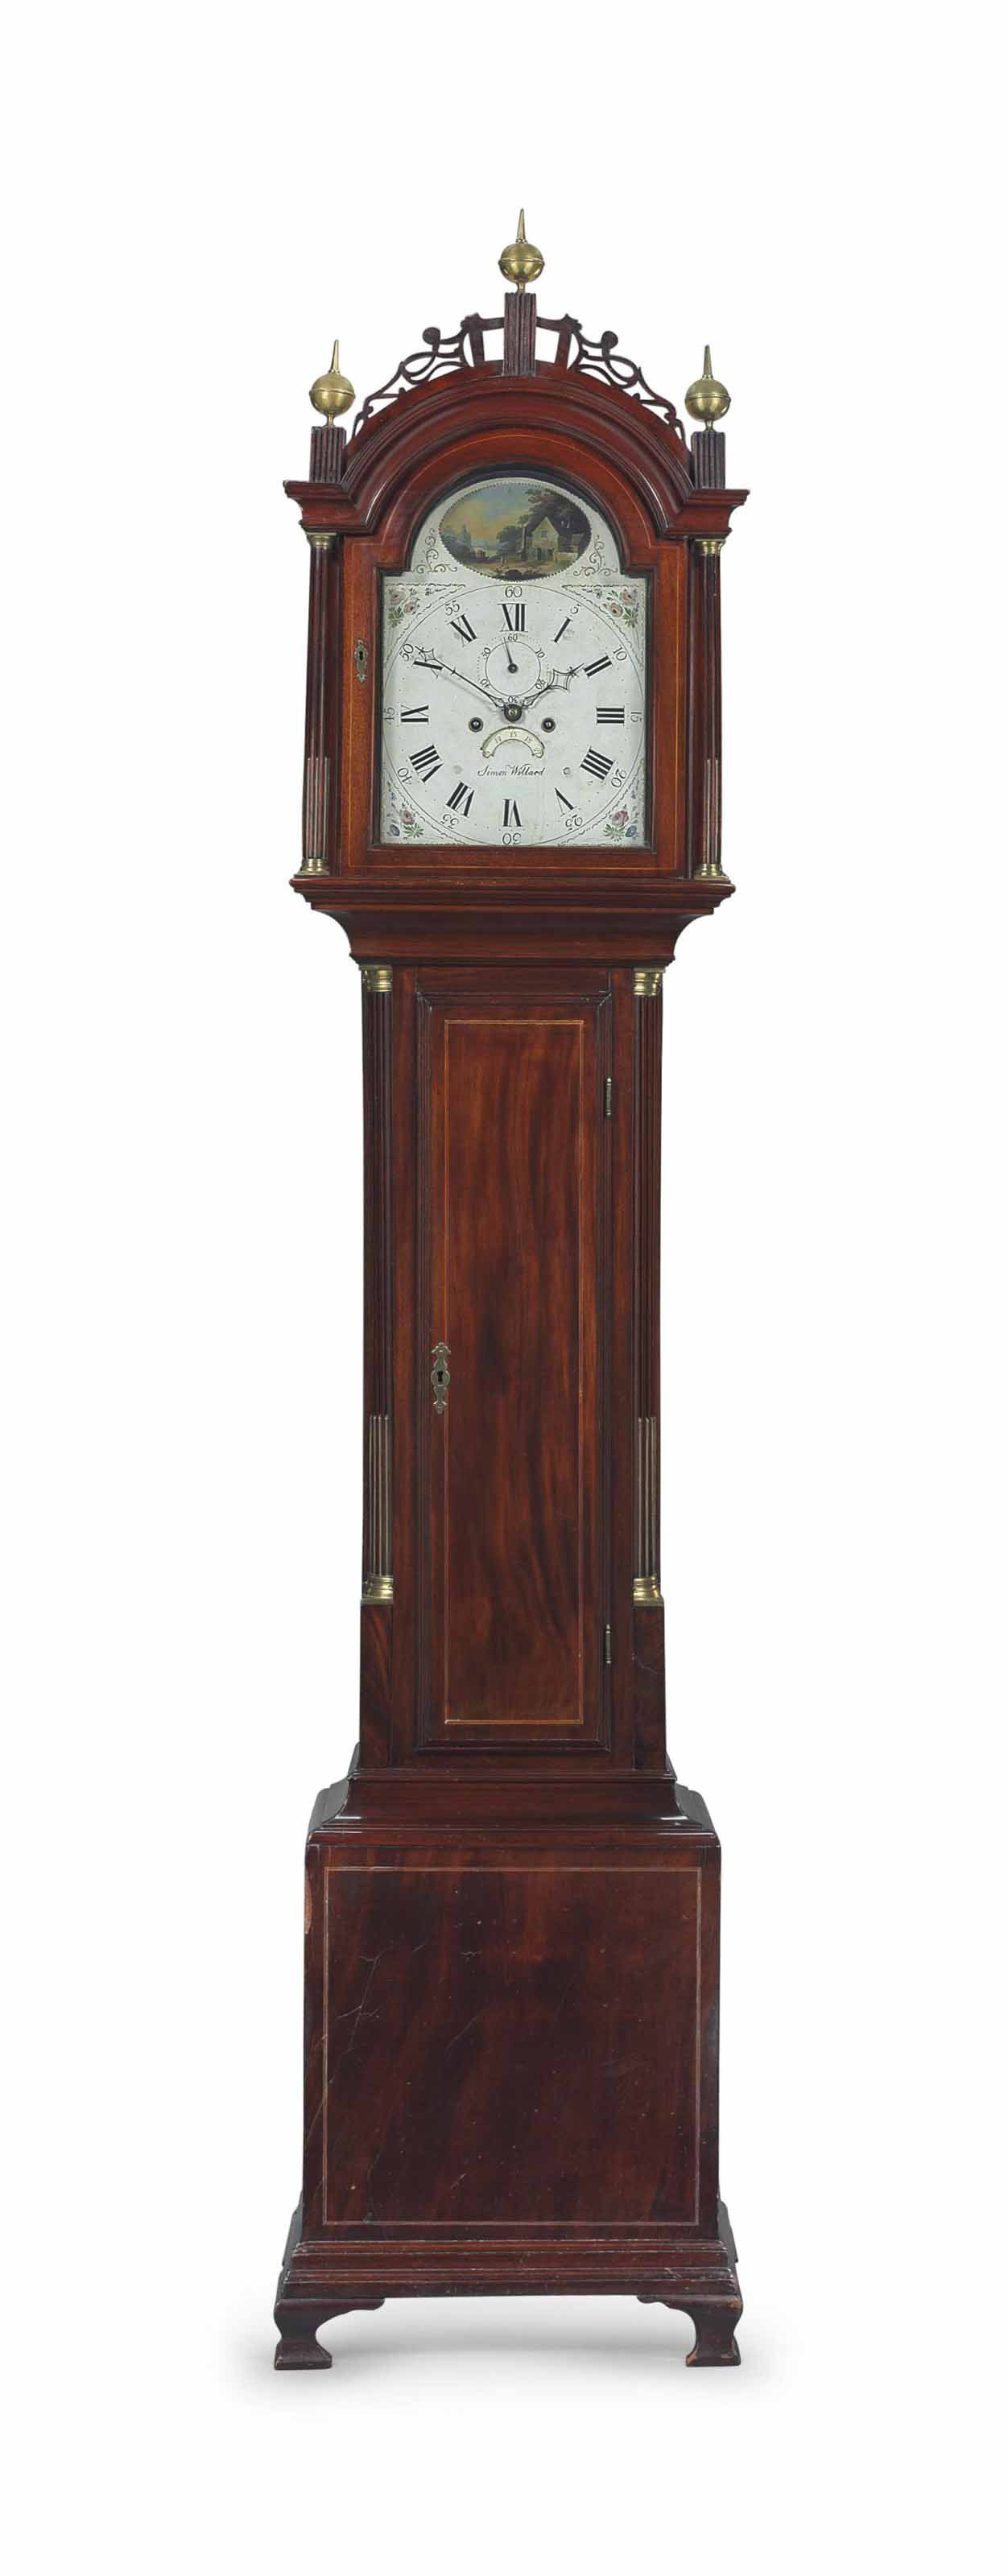 A FEDERAL BRASS-MOUNTED INLAID MAHOGANY TALL CASE CLOCK